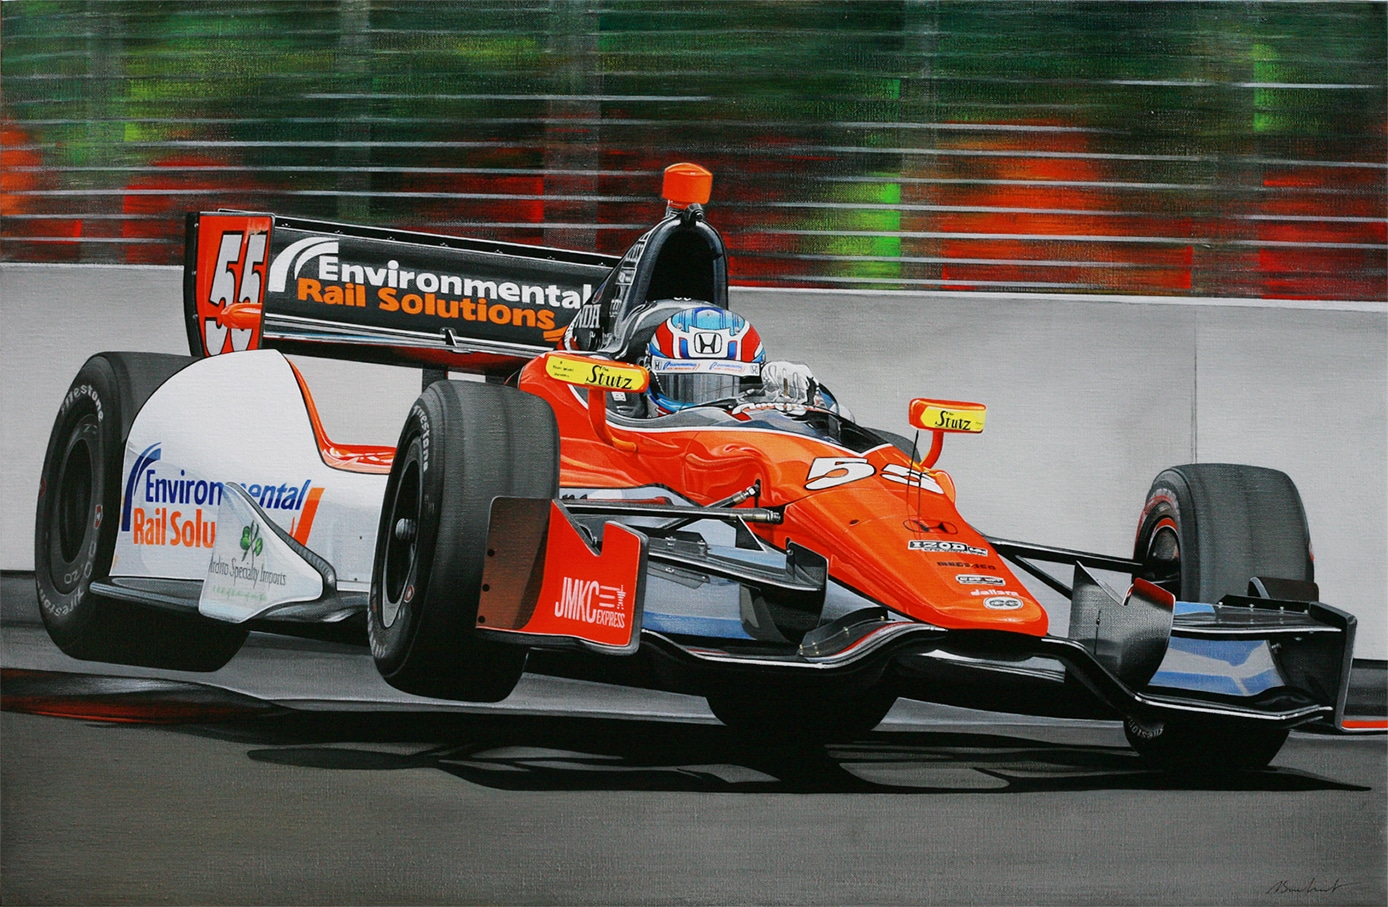 19. INDYCAR Baltimore 2013 - Coll. part